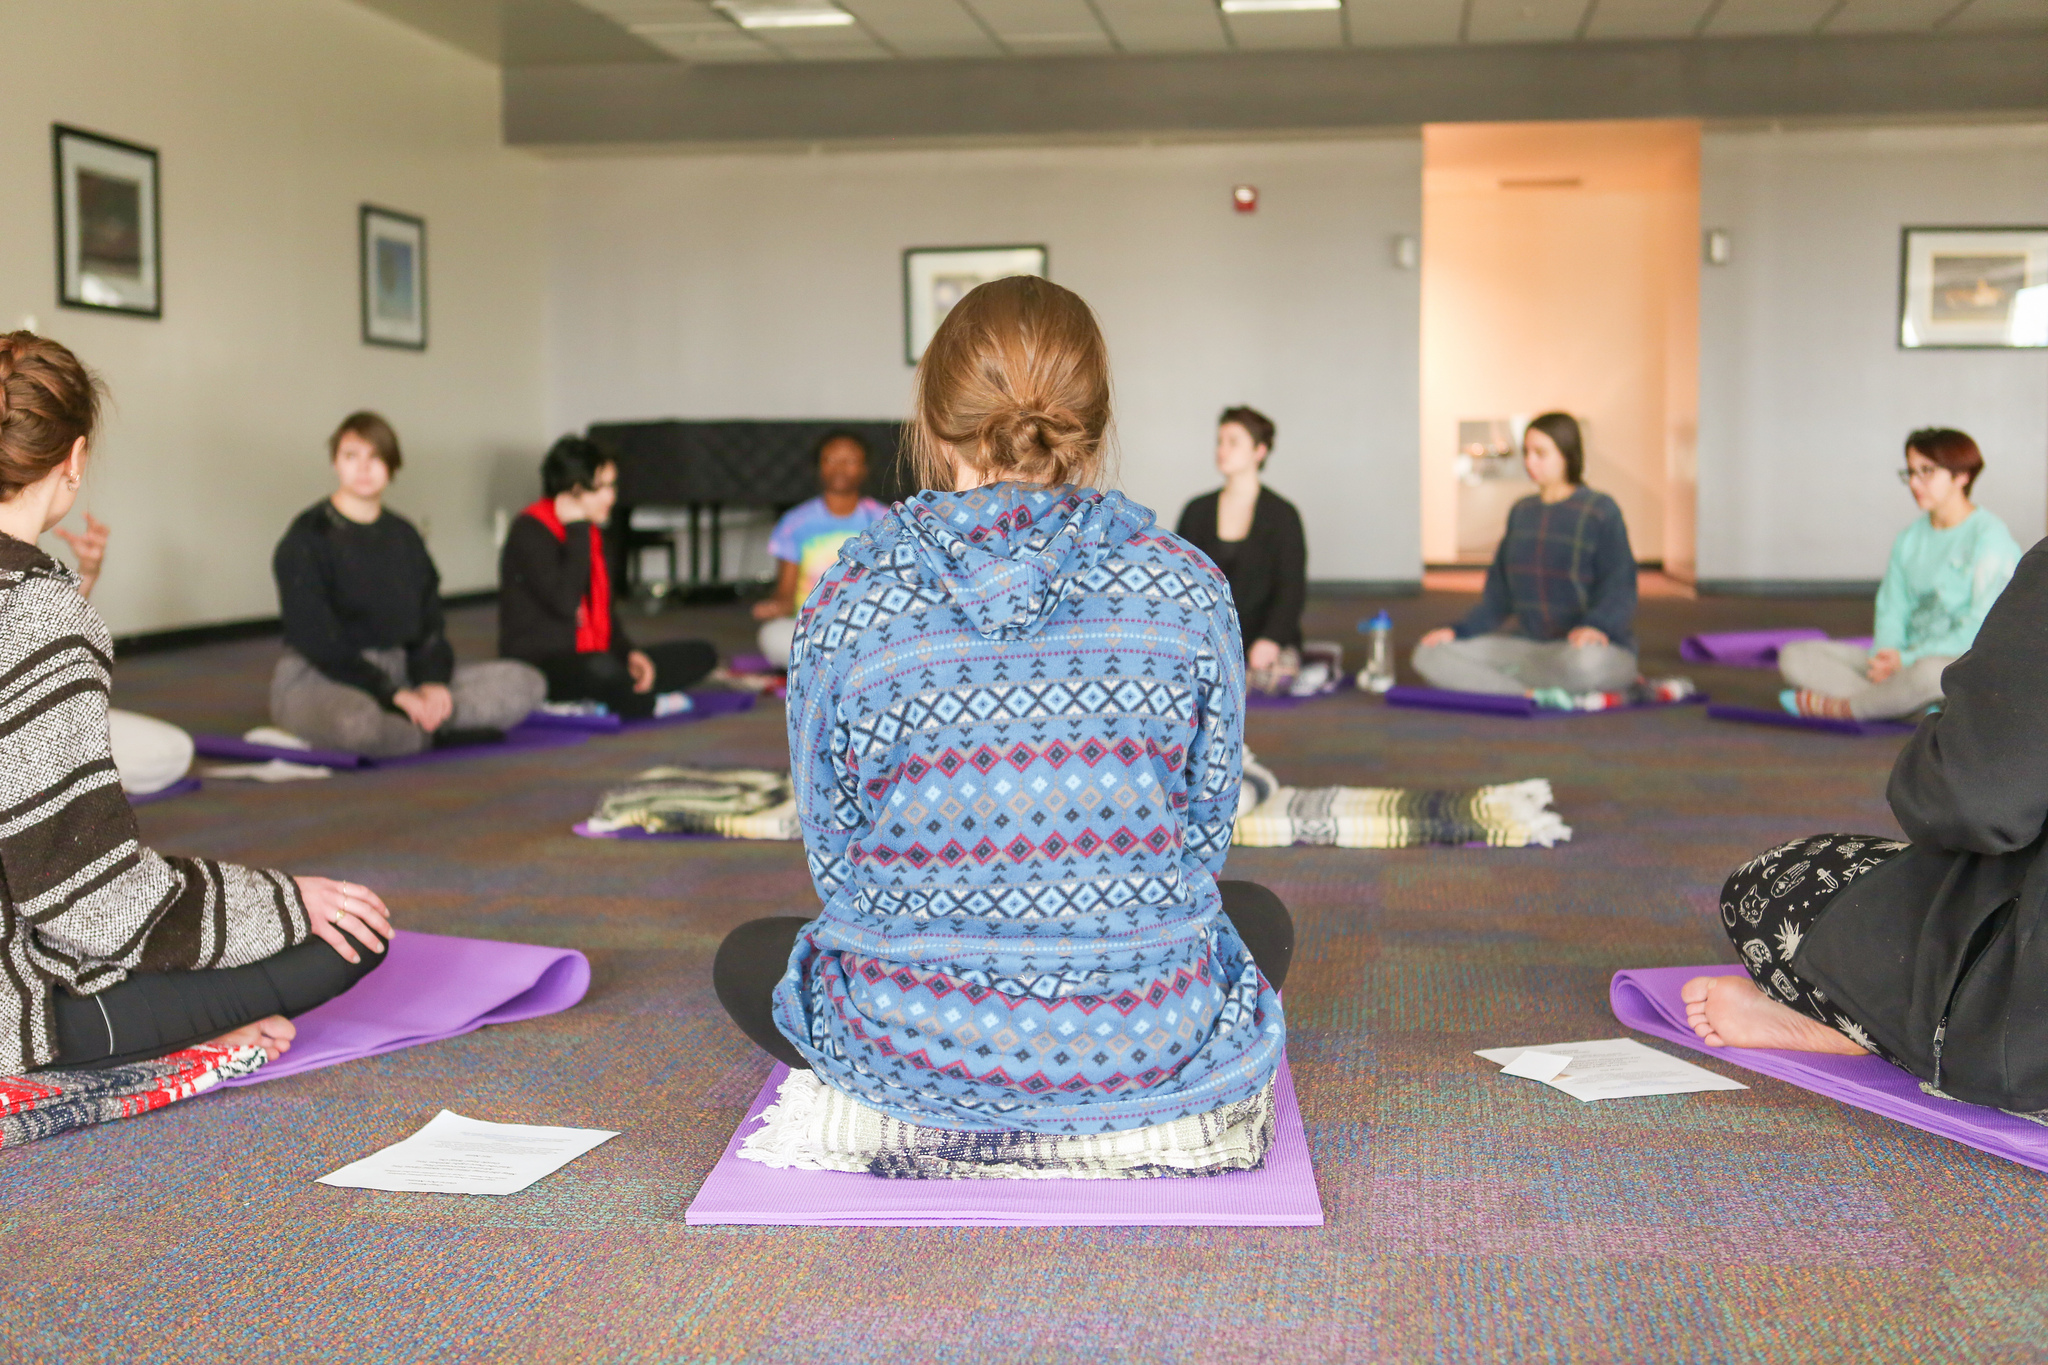 Image of JMU student partaking in the Mindfulness Experience Retreat.